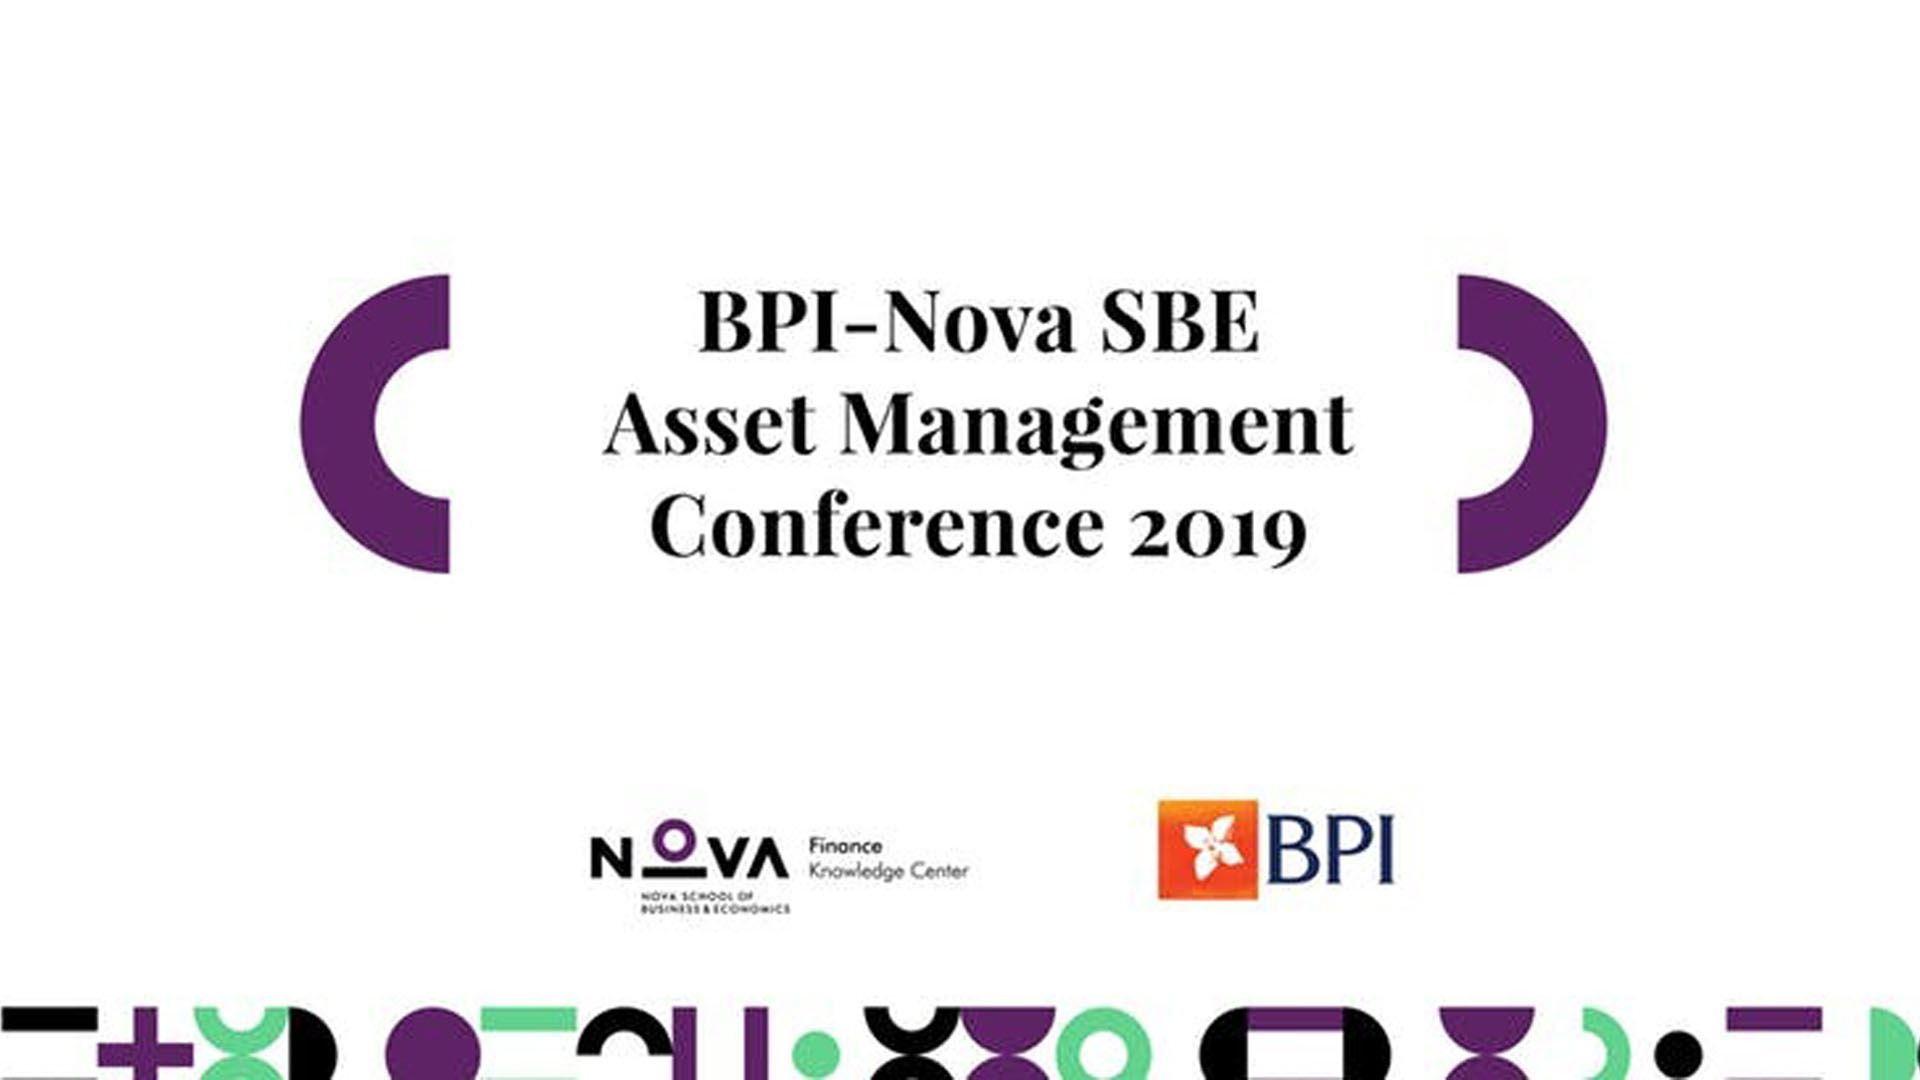 BPI-Nova SBE Asset Management Conference 2019